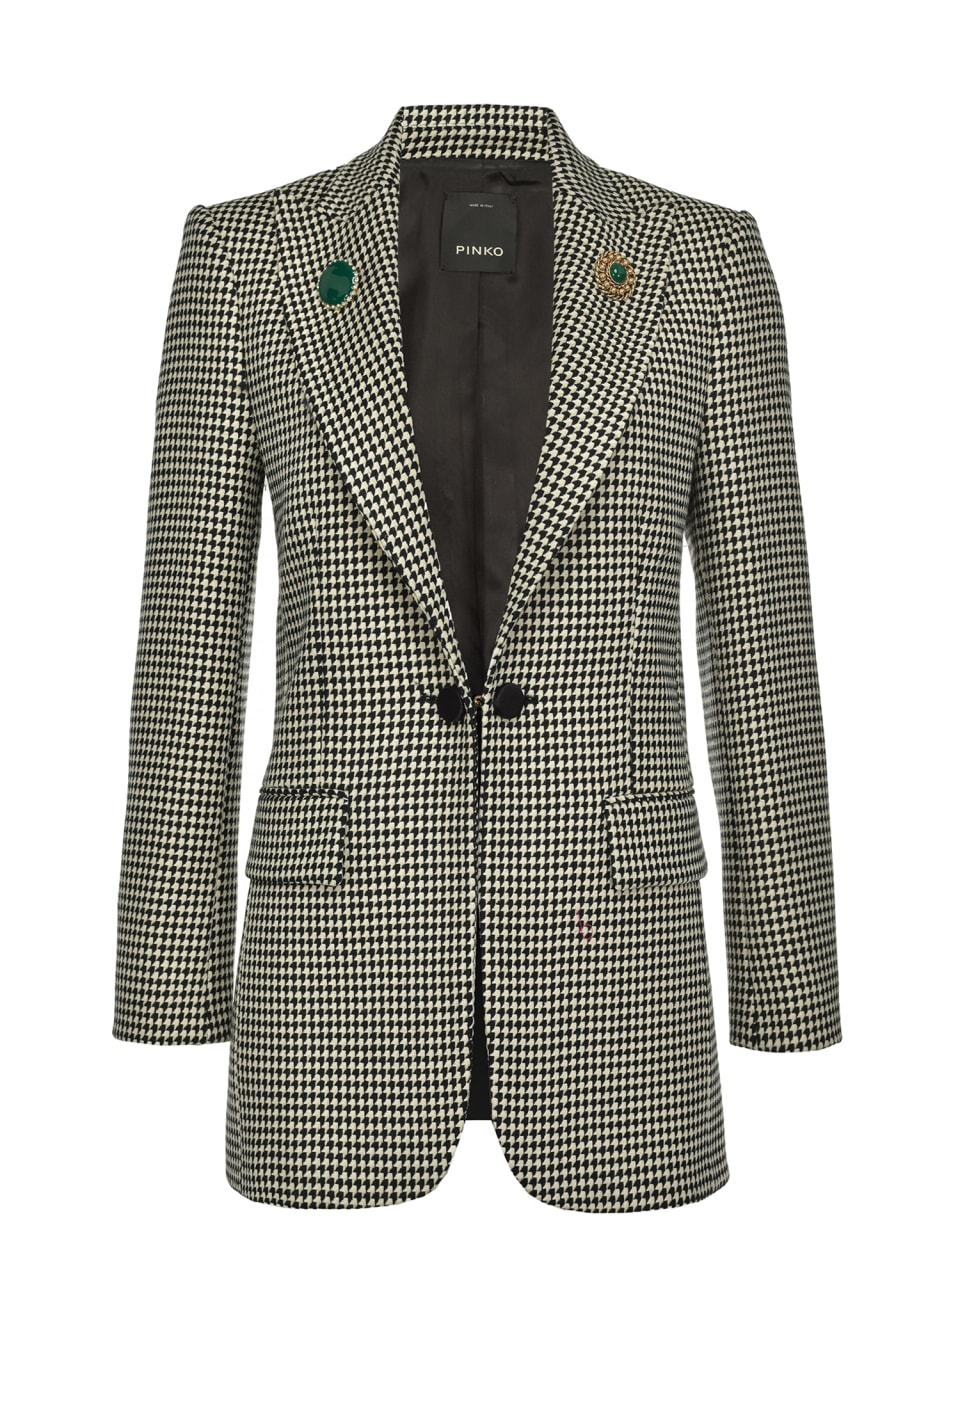 Houndstooth blazer with cufflinks - Pinko